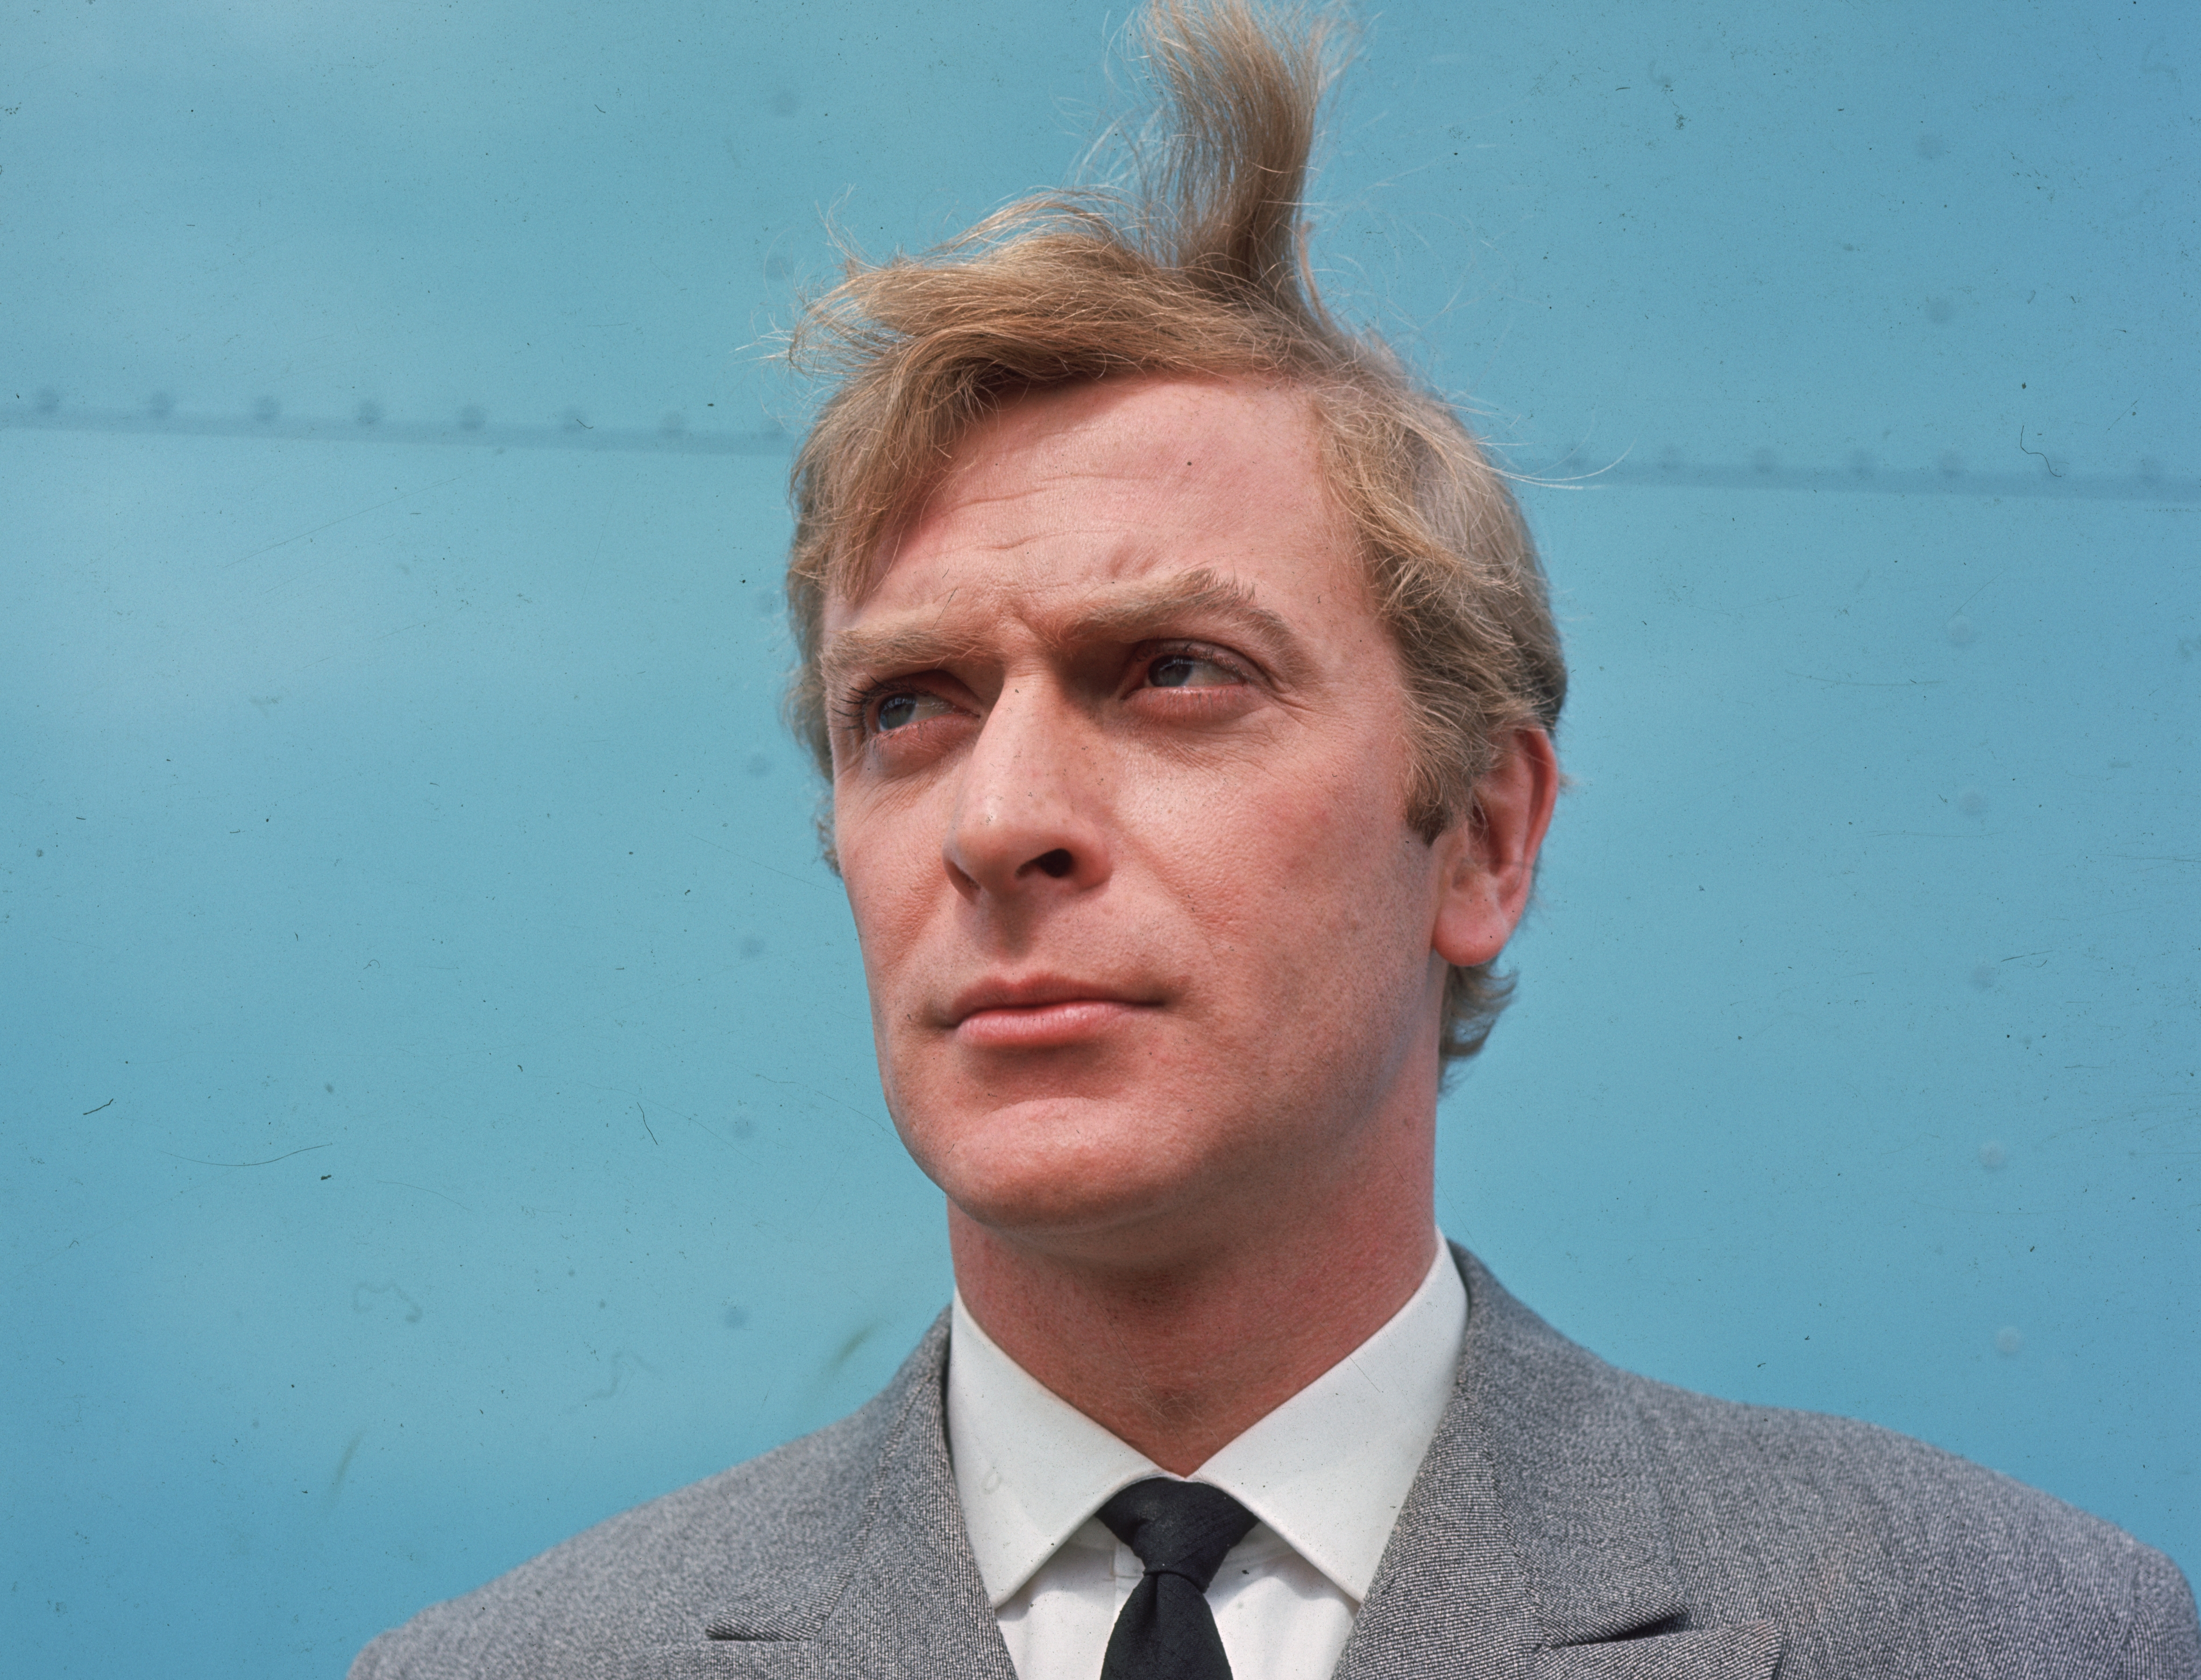 Michael Caine facts